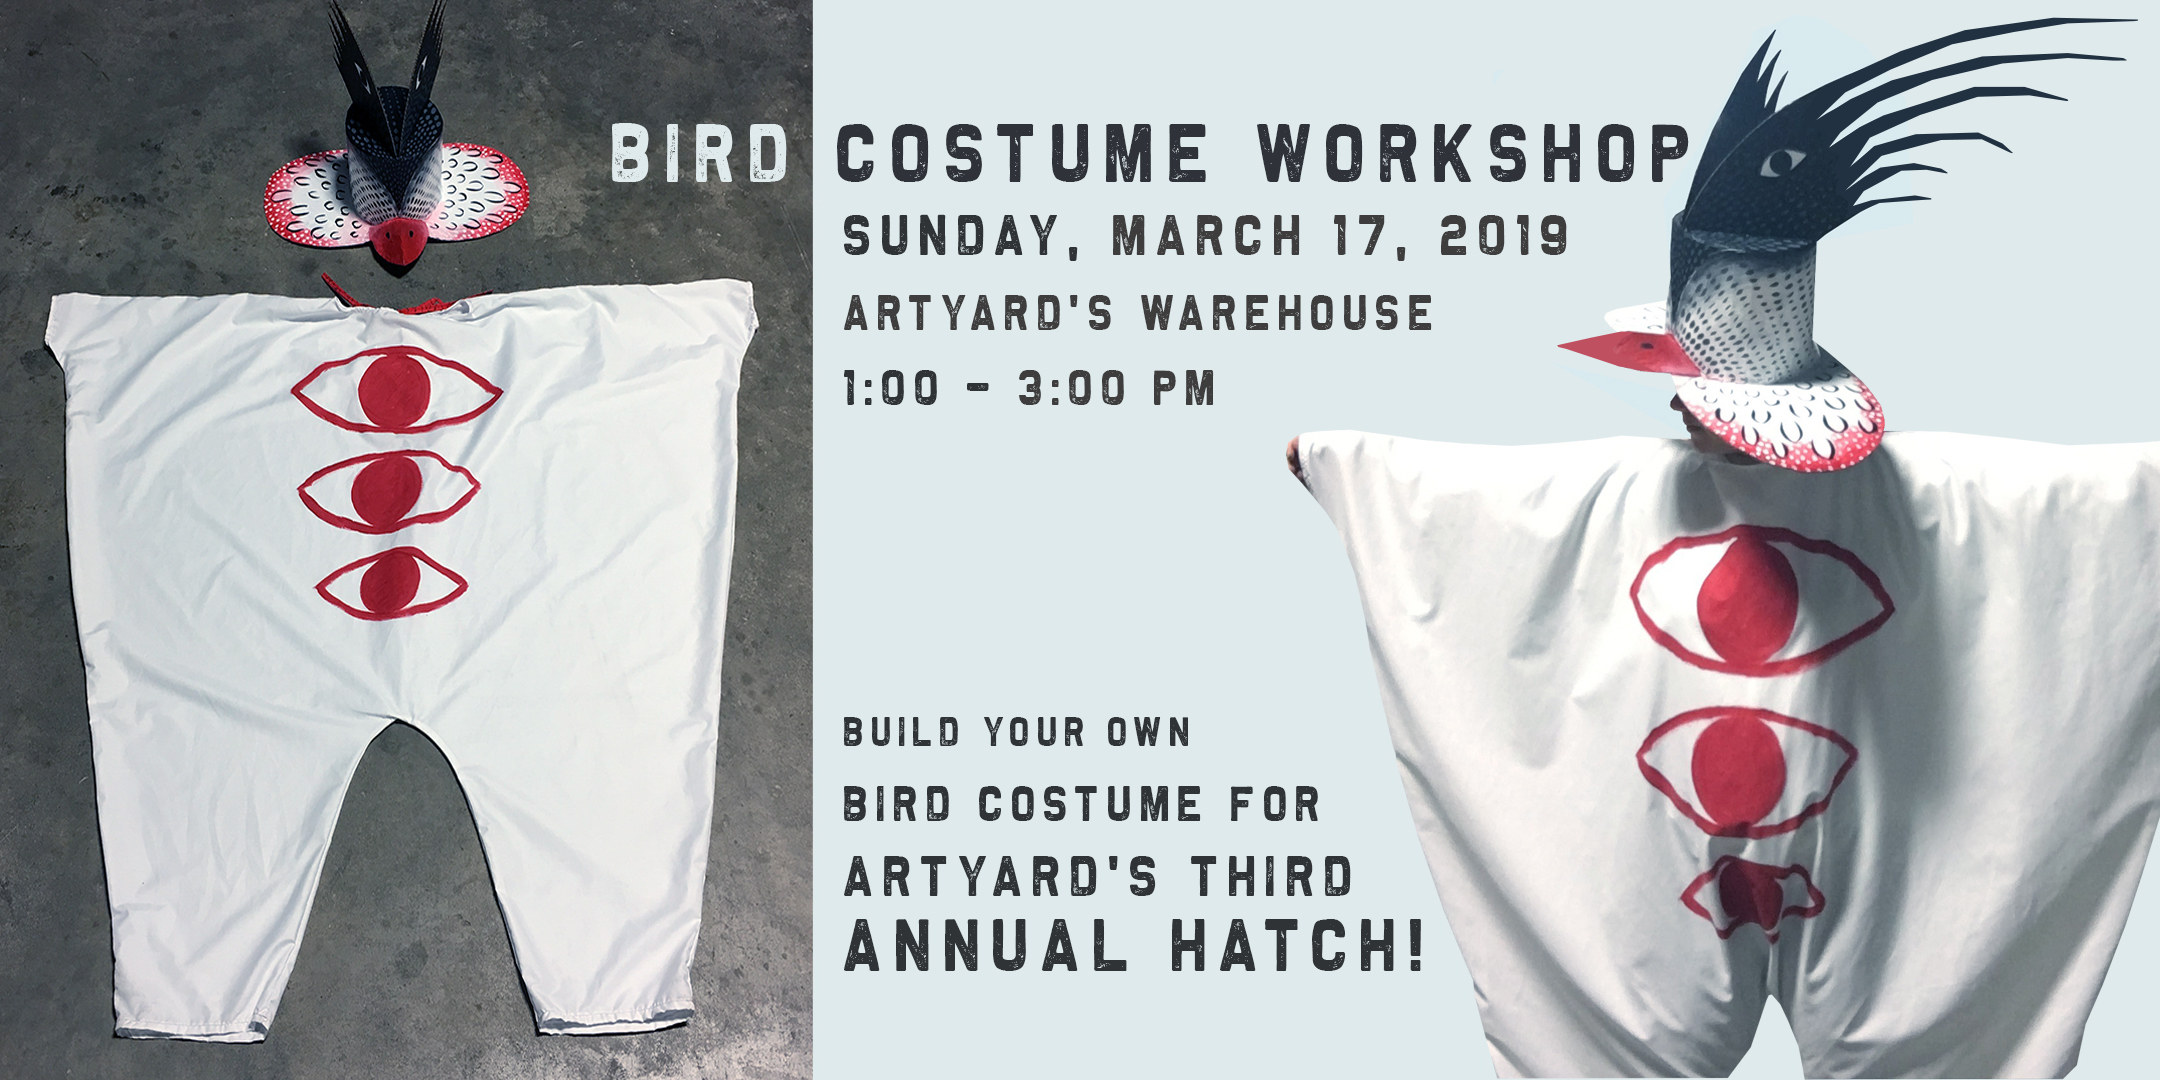 Bird Costume Workshop for ArtYard's Third Annual Hatch! @ ArtYard's Theater | Frenchtown | New Jersey | United States